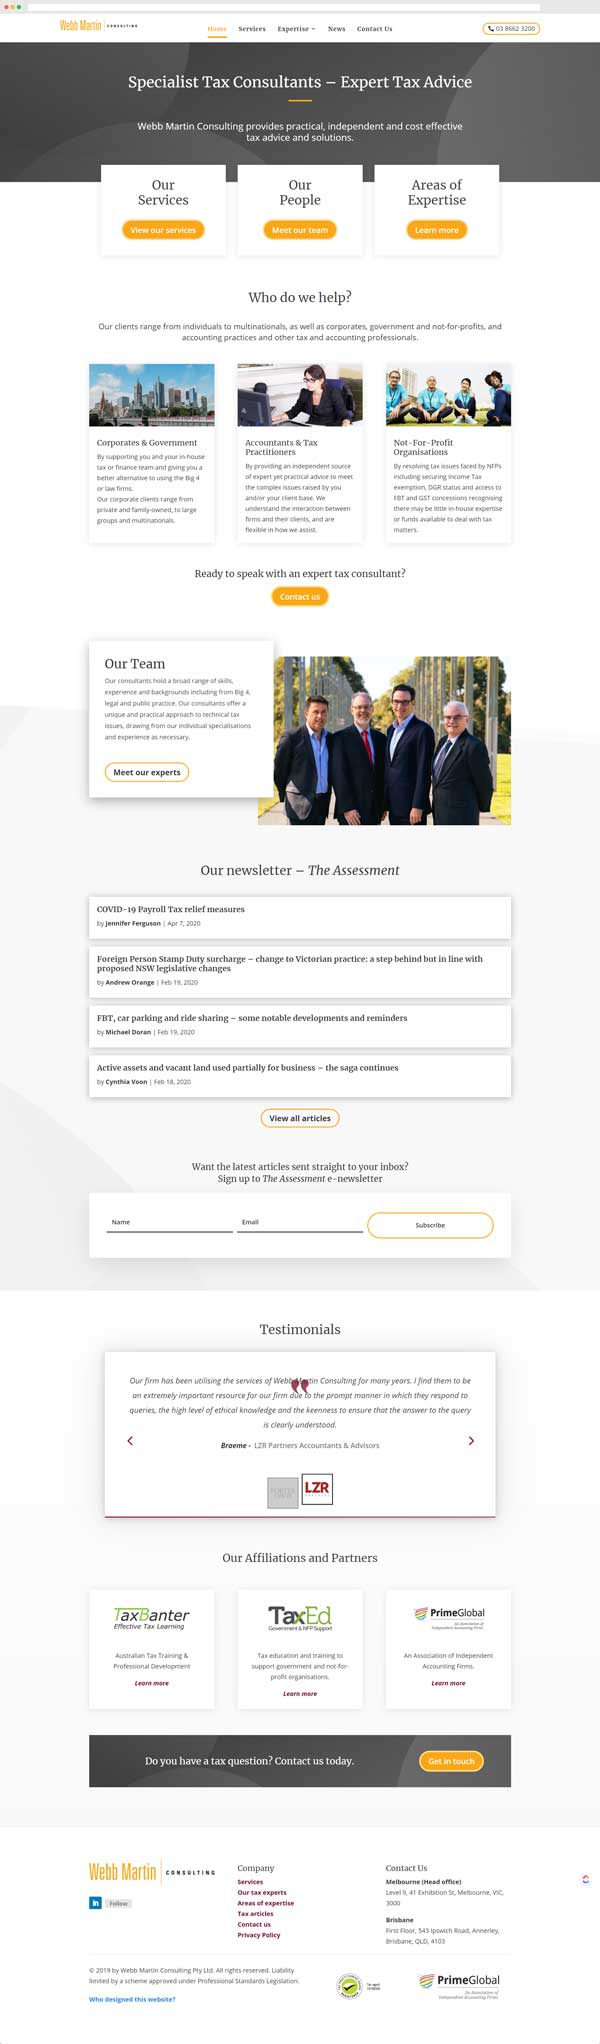 Webb Martin Consulting - home page screenshot